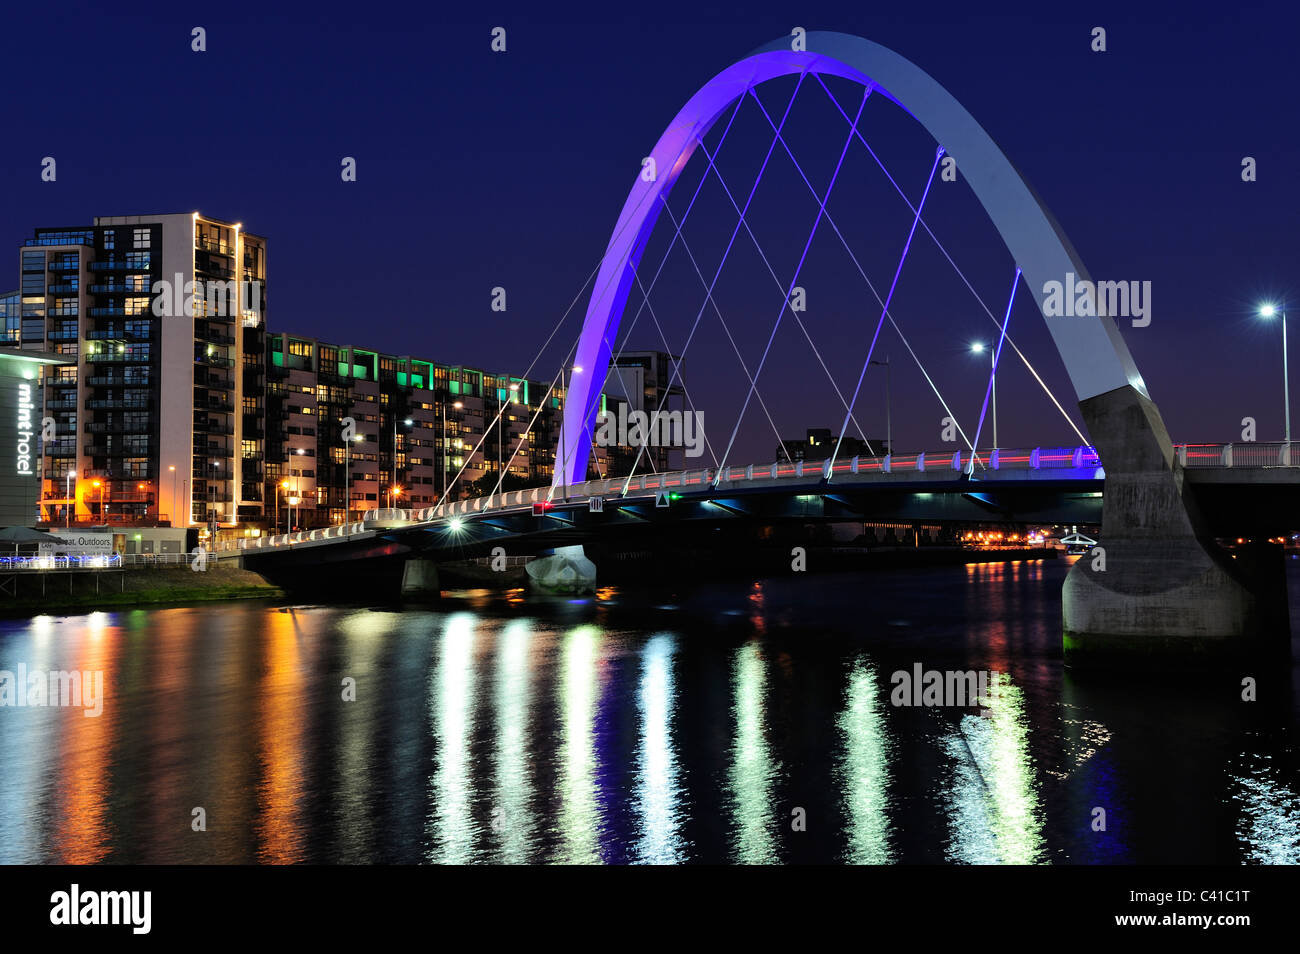 Clyde Arc Bridge at Finnieston at night, Glasgow, Scotland - Stock Image